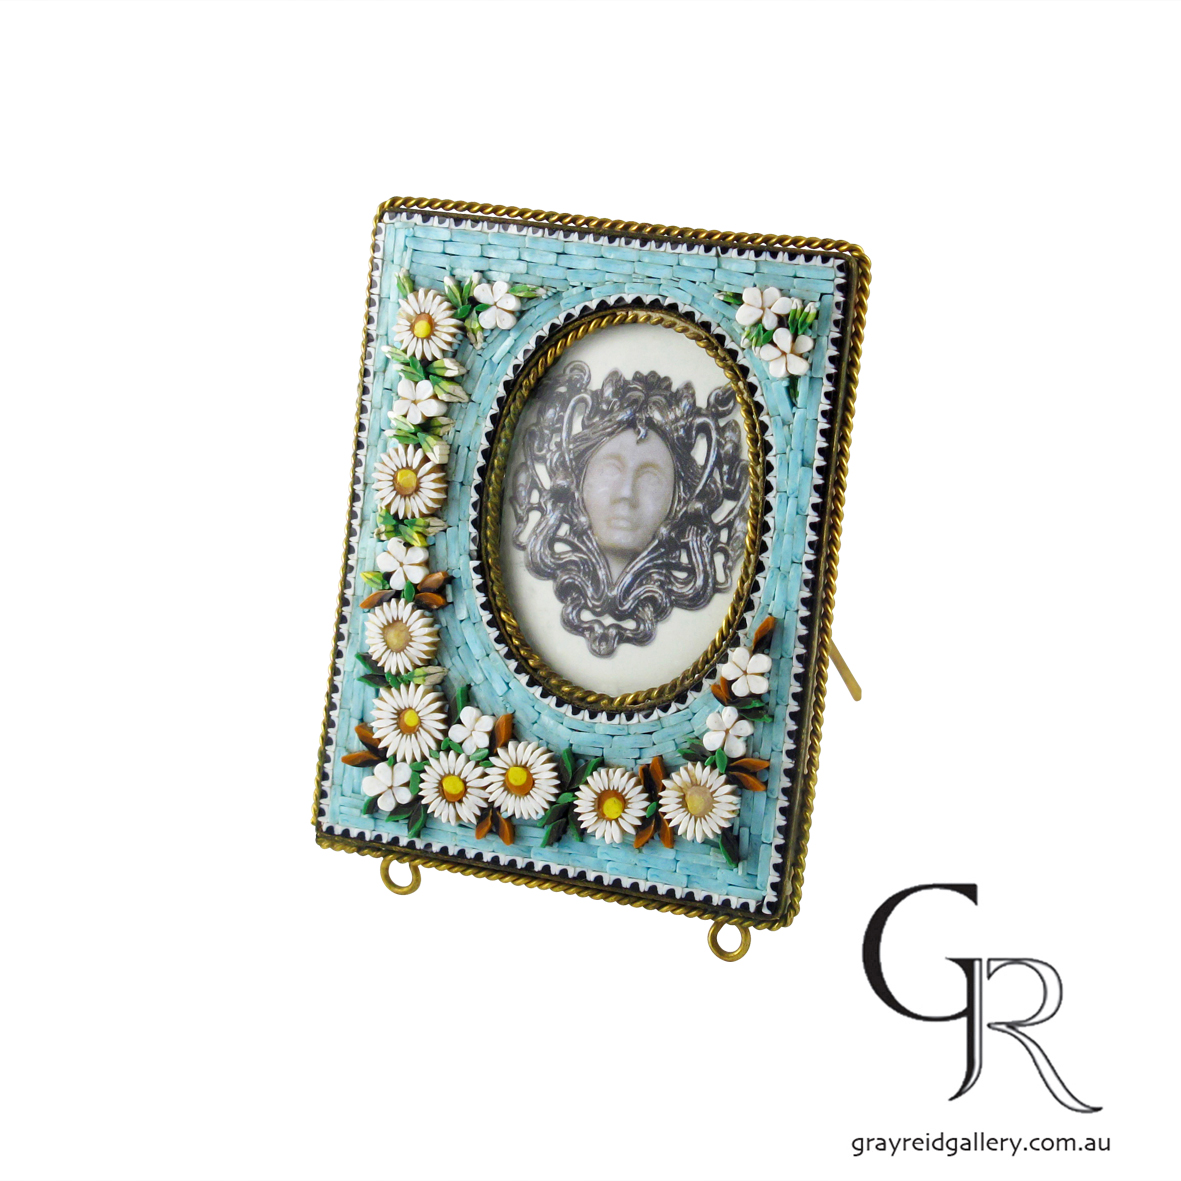 antiques and collectables melbourne micro mosaic picture frame Gray Reid Gallery 6.jpg